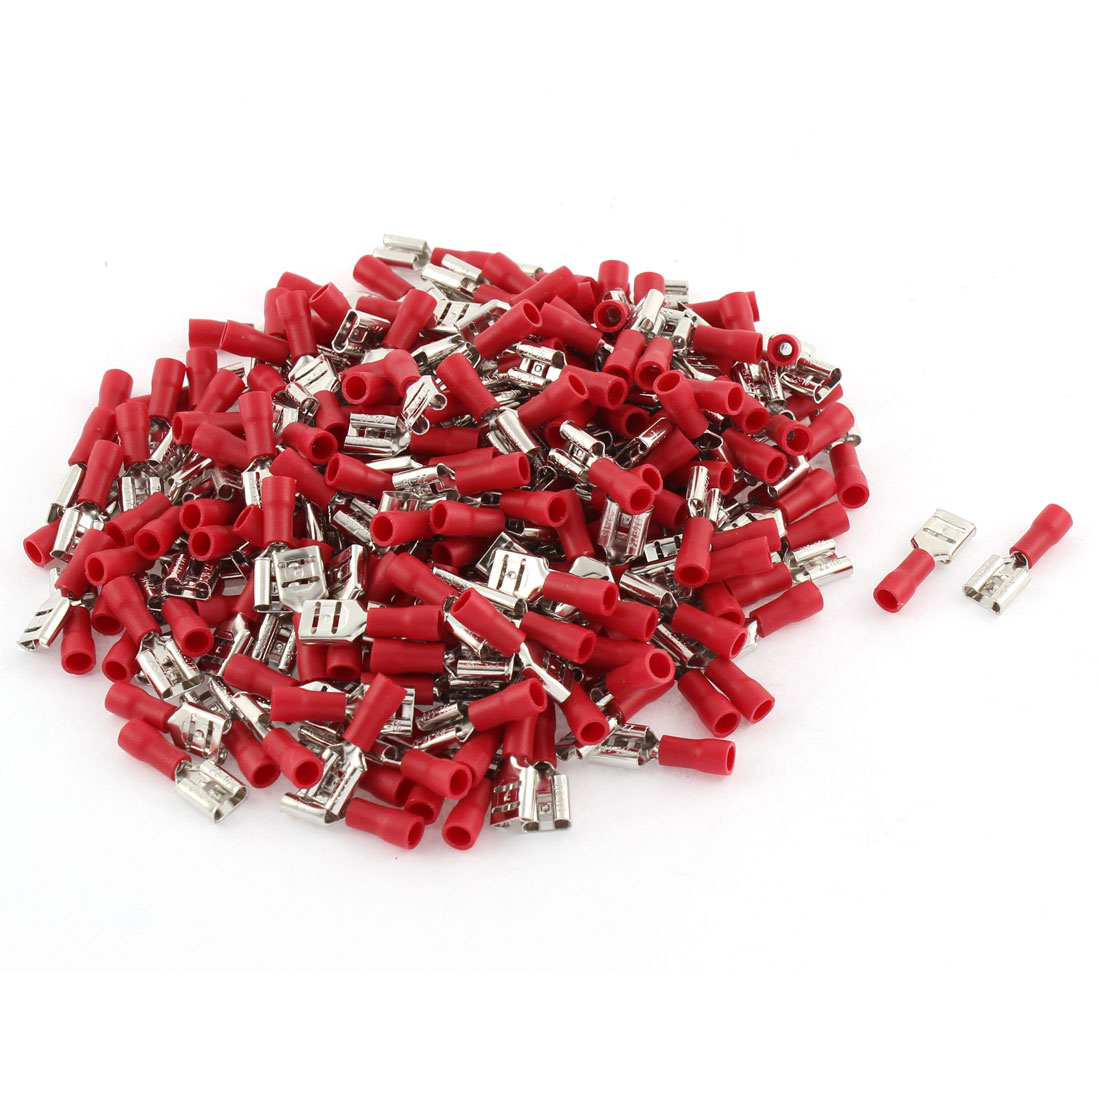 165pcs FDD1-250 Red Female Spade Connector Insulated Crimp Terminals 22-16AWG